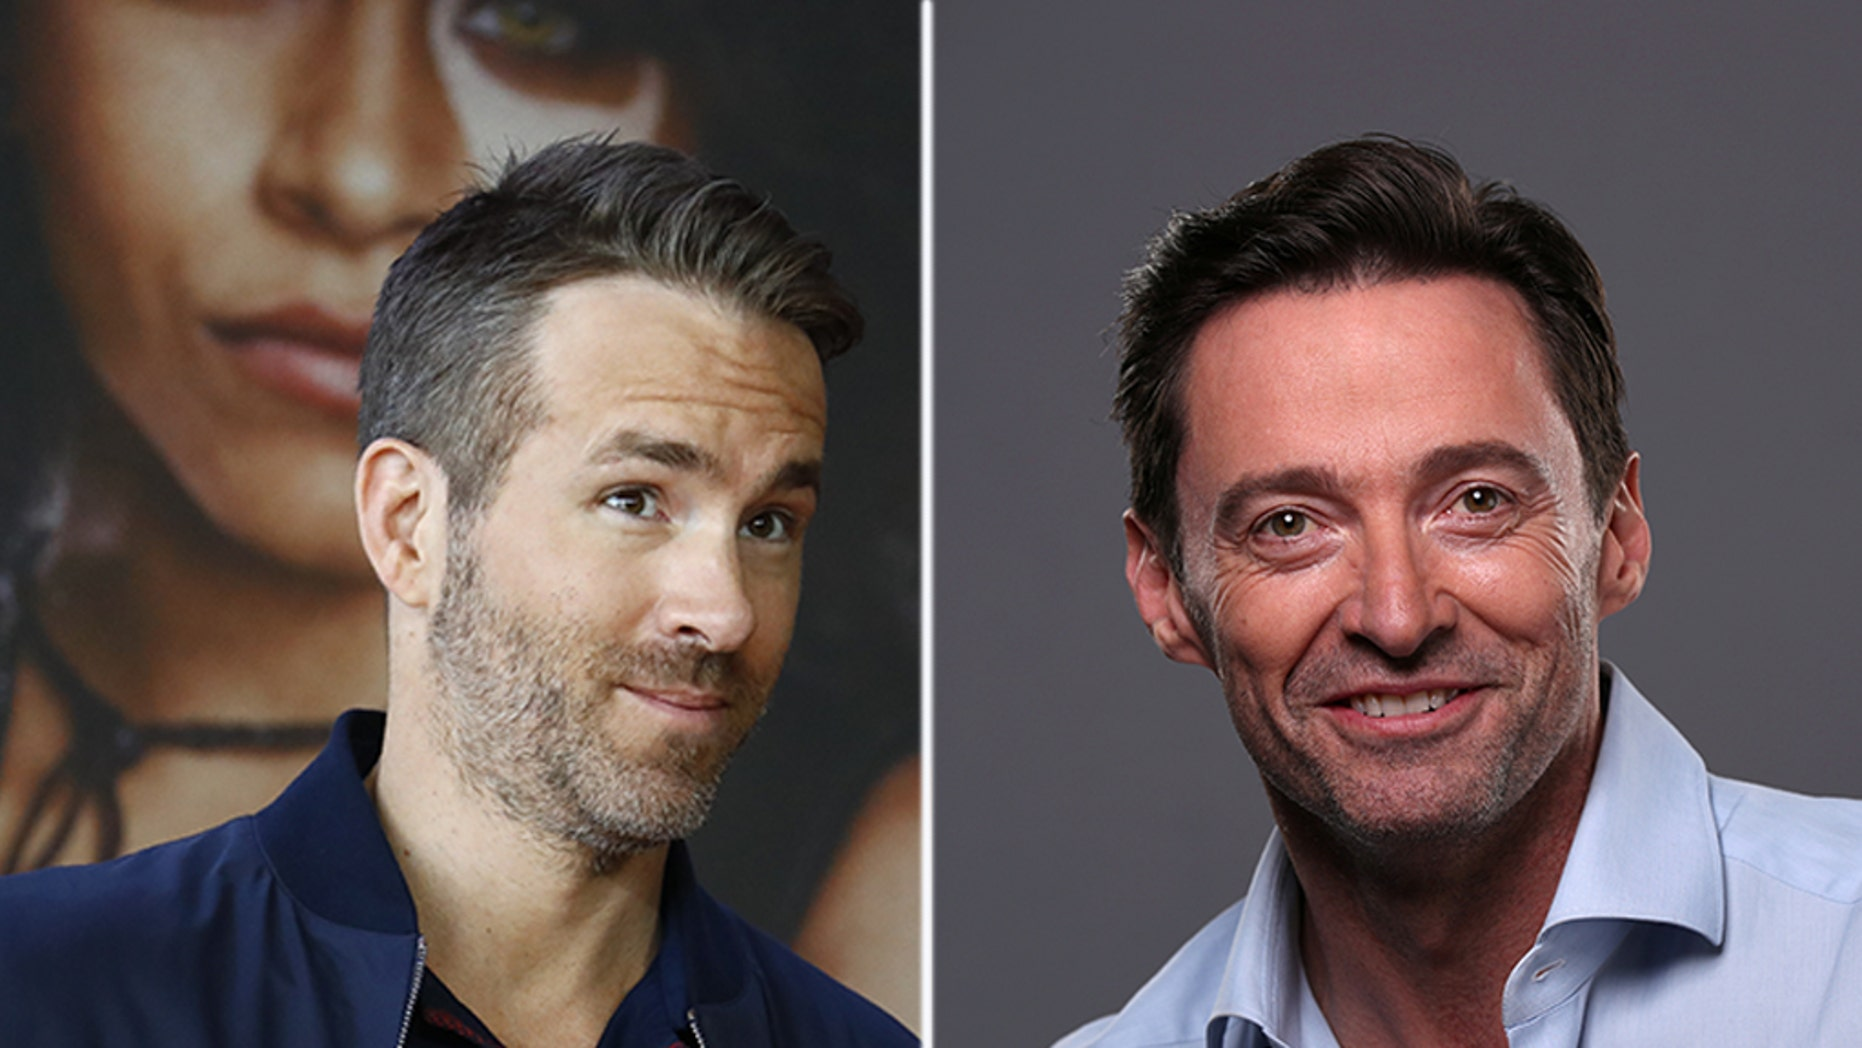 """Hugh Jackman once again appears to be the focus of fellow actor Ryan Reynolds' jokes, after the """"Deadpool"""" star released a mock political ad about him."""